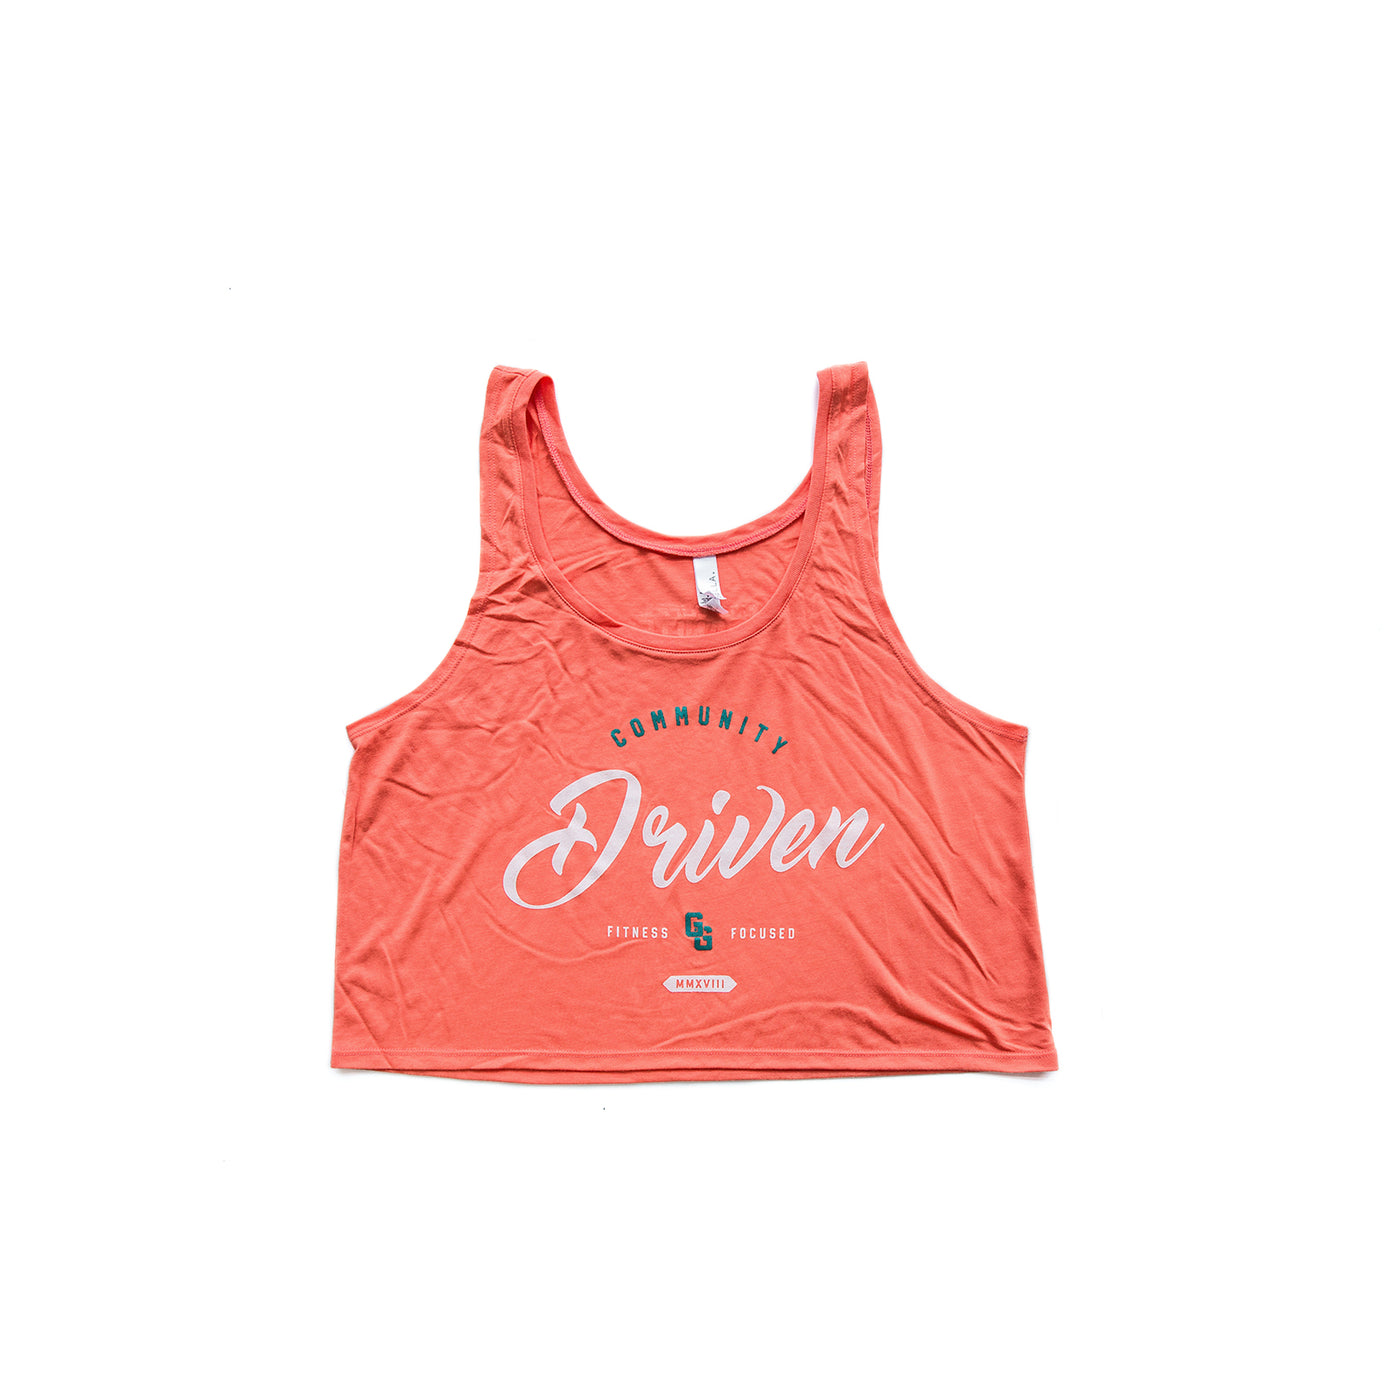 Community Driven Crop Top